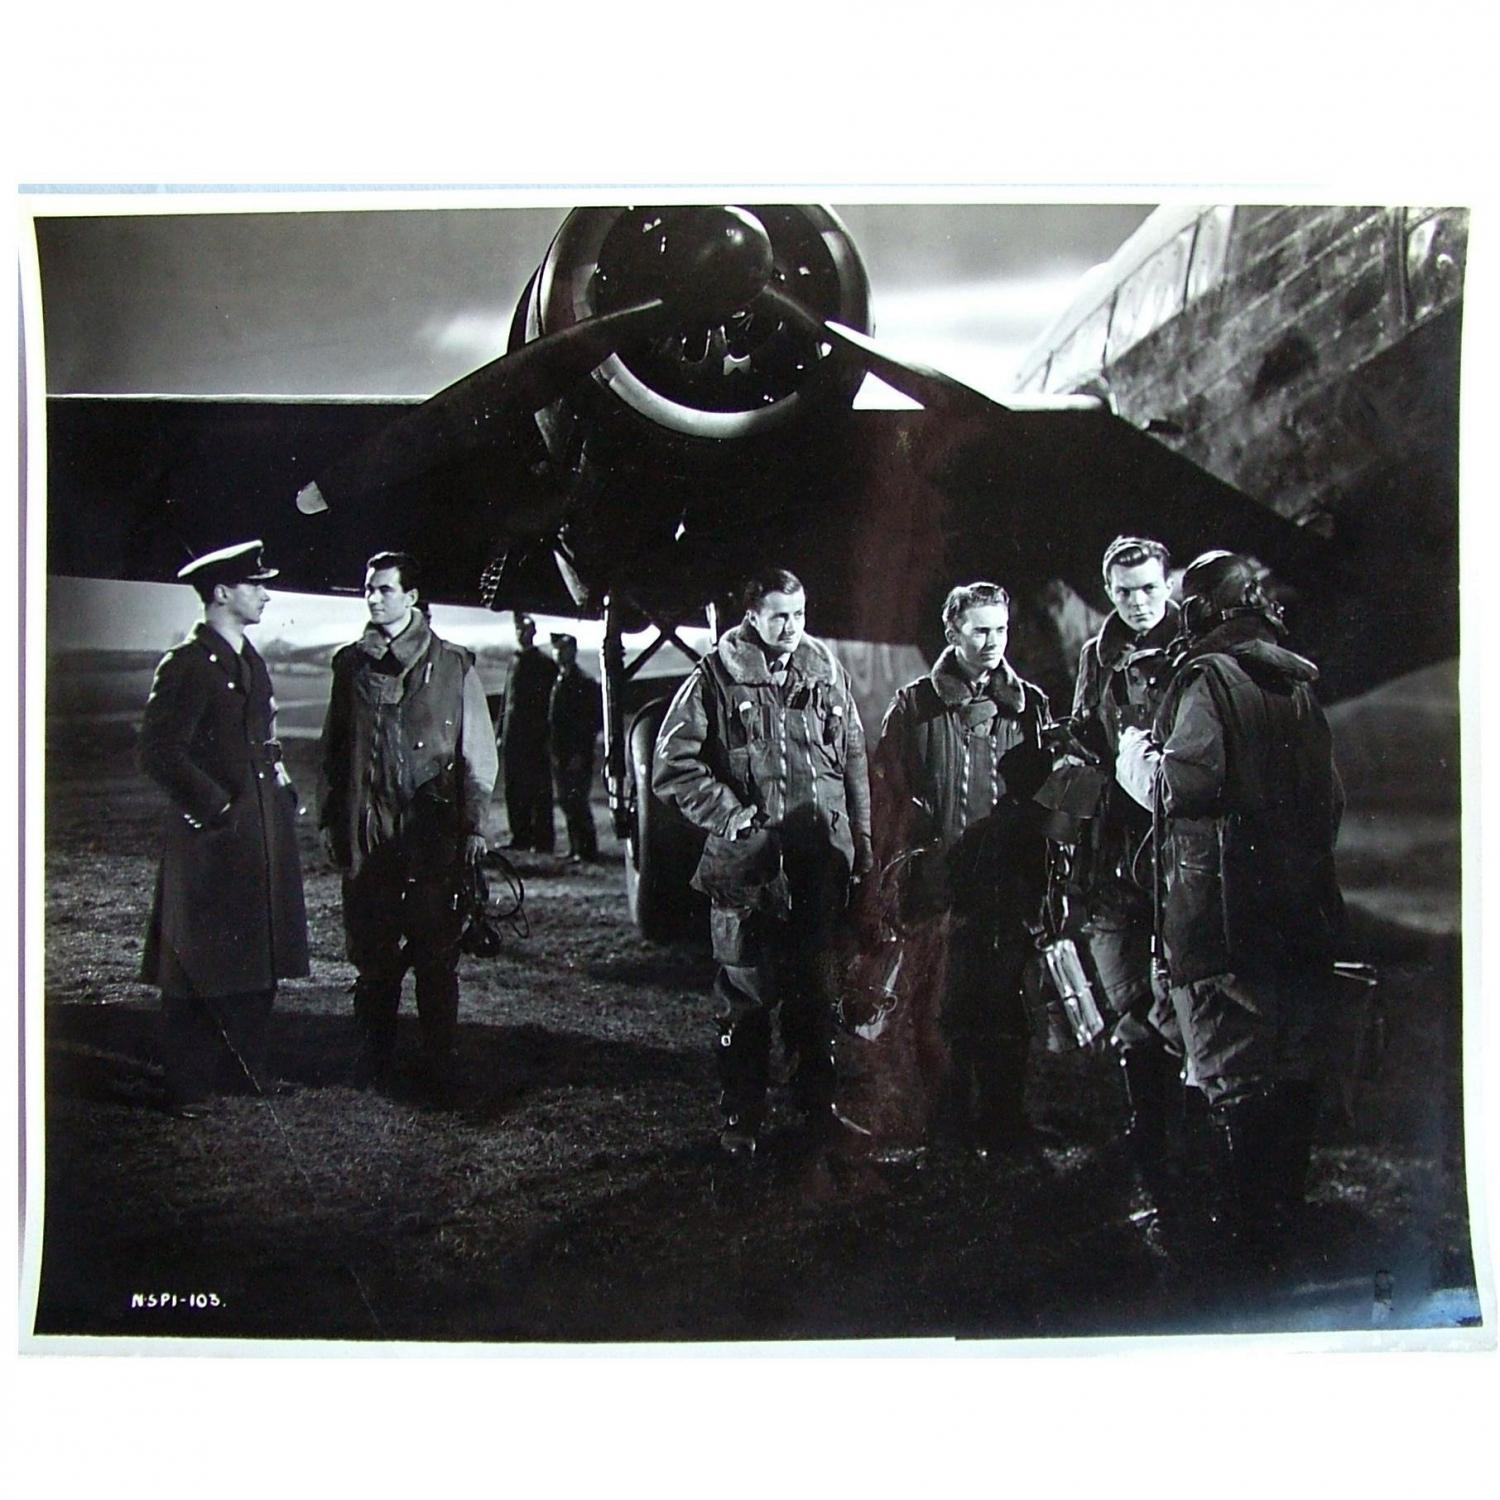 War Film Promotional Photo #2